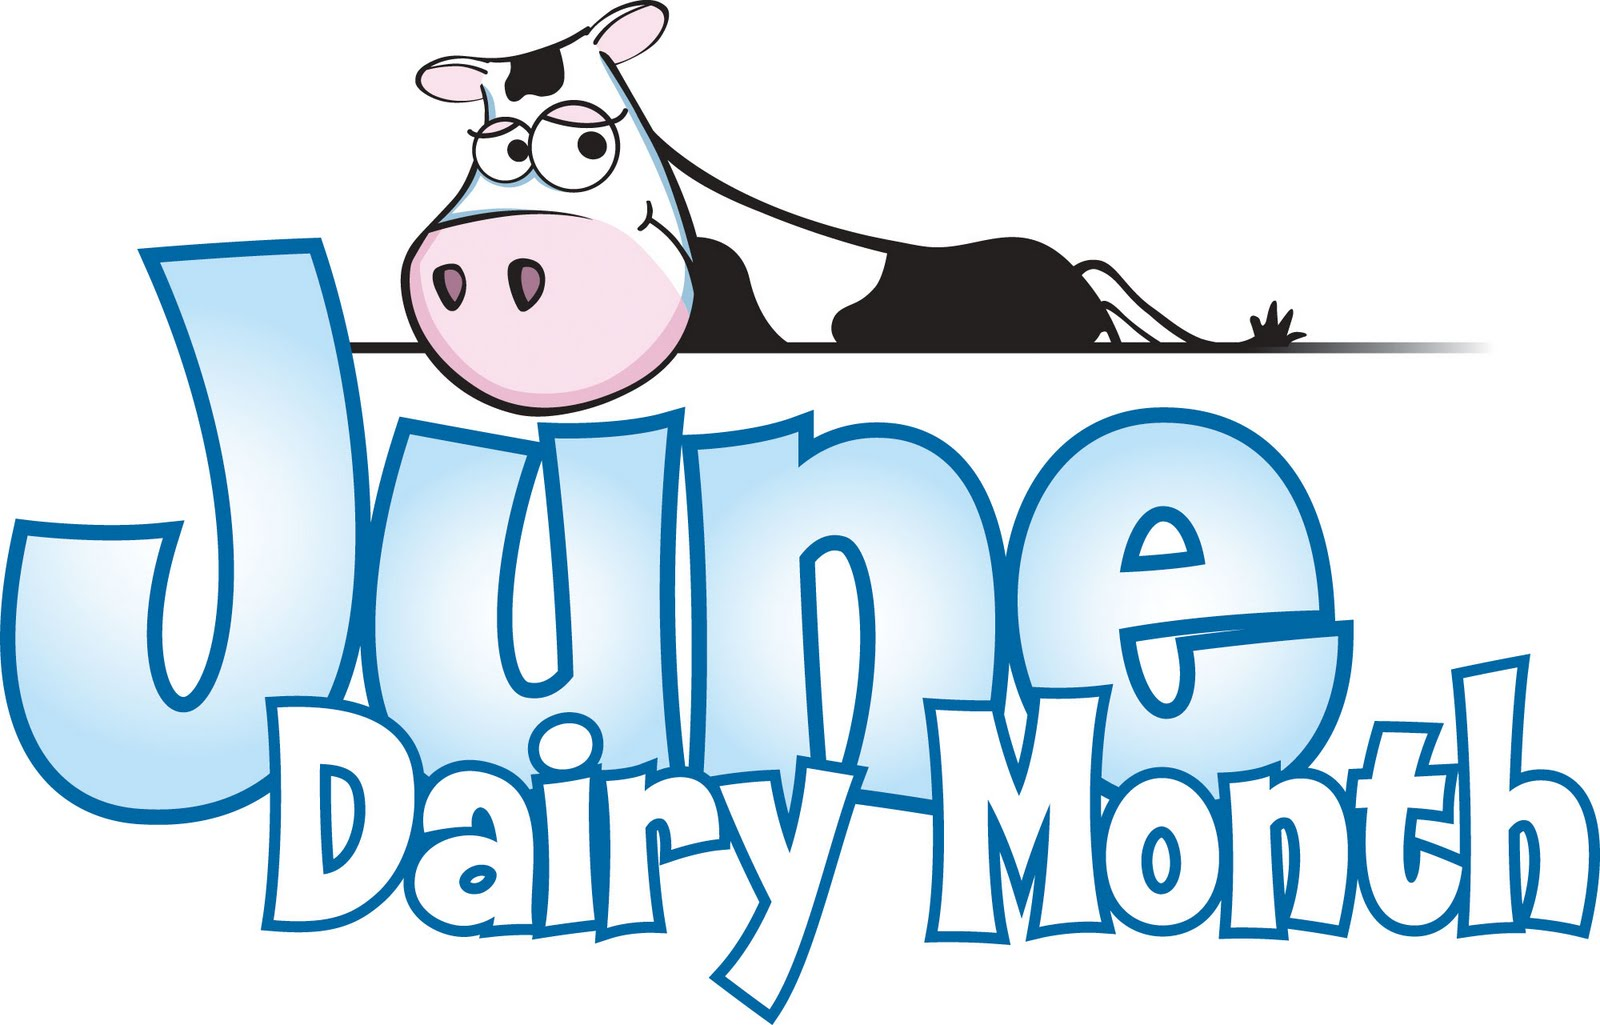 Month of june clip art picture freeuse June Dairy Month Clipart - Clipart Kid picture freeuse